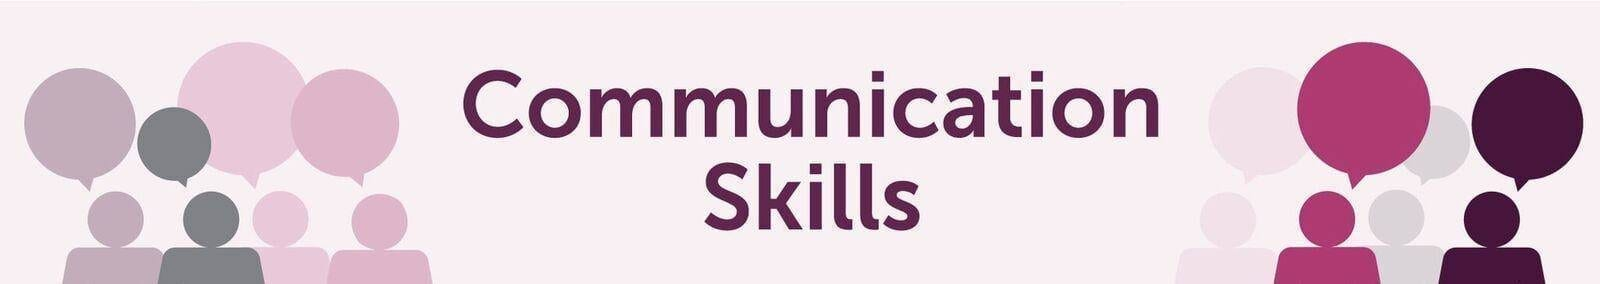 communication skills, effective communication, communication skills training